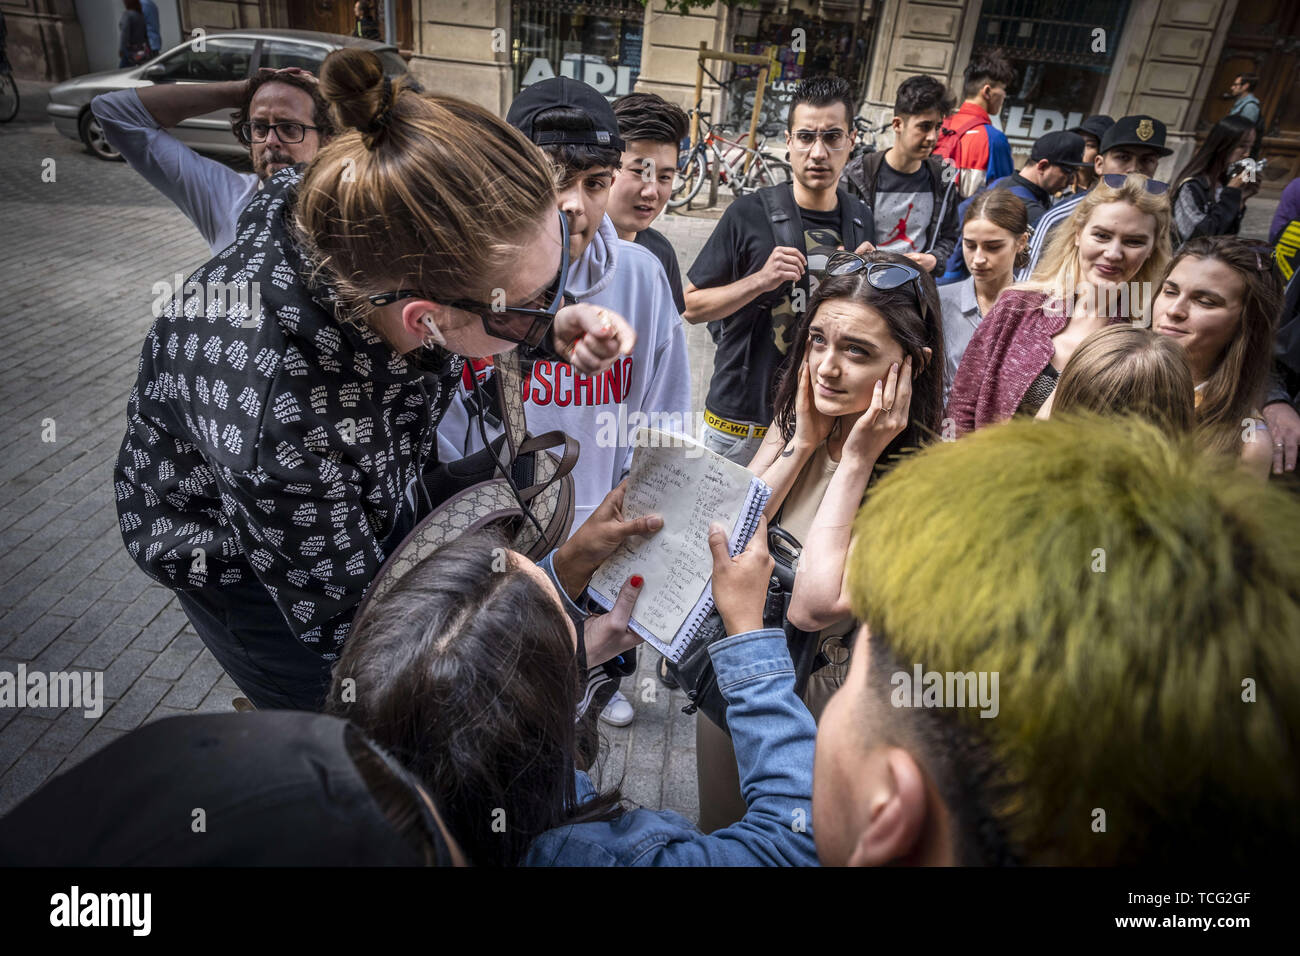 Barcelona, Catalonia, Spain. 7th June, 2019. A group of young people prepare to buy the new Adidas sneaker at the reseller store.The German manufacturer of sports shoes Adidas has launched the limited edition of the Yeezy Boost 350 sports shoe model designed by rapper Kanye West. The limited production of this model has made many young people crowd in front of stores and resellers to be one of the lucky ones. Credit: Paco Freire/SOPA Images/ZUMA Wire/Alamy Live News - Stock Image